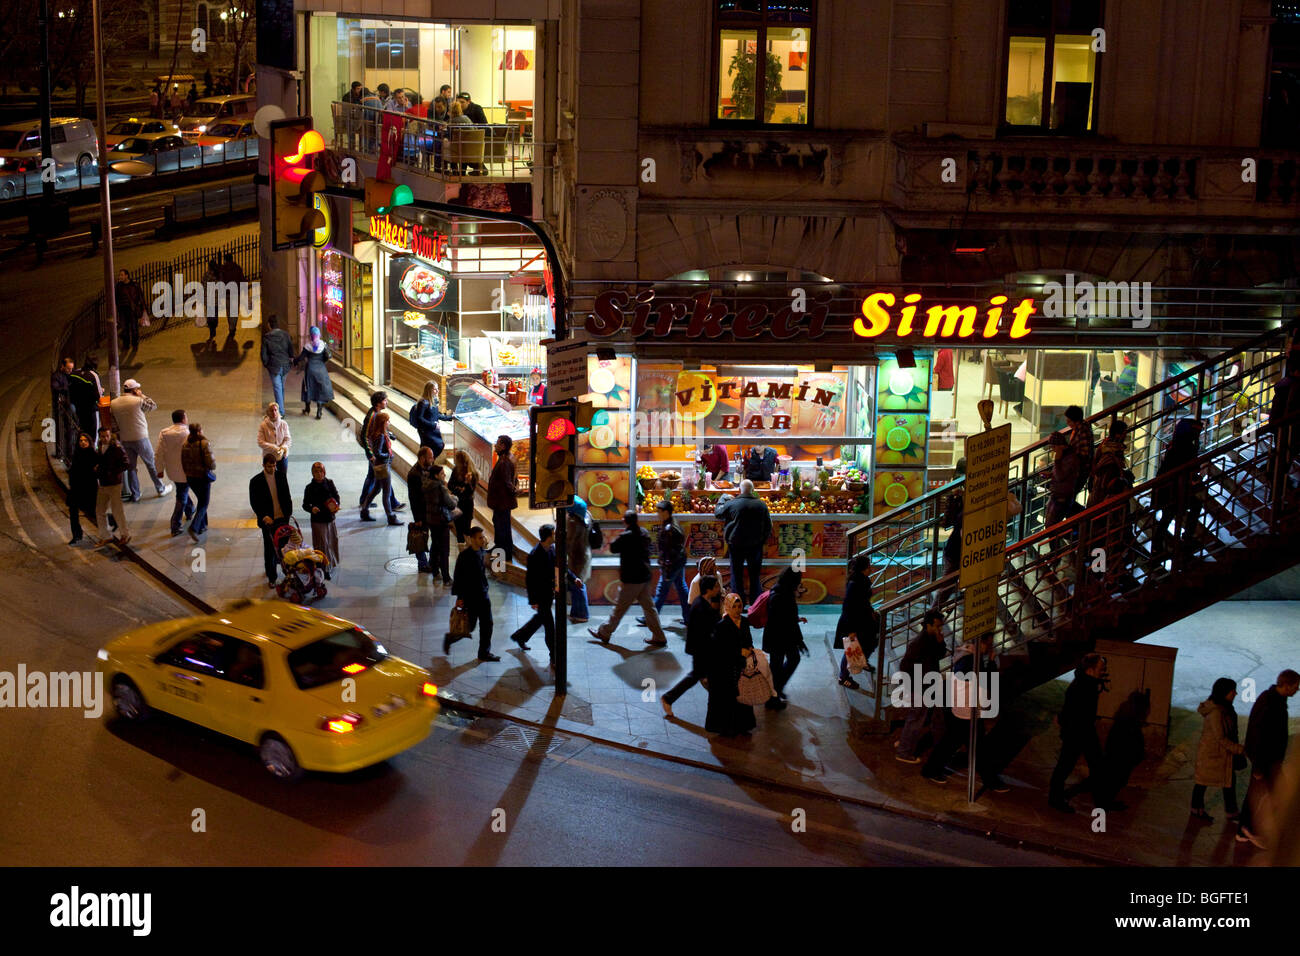 A busy street at night in Eminonu district, Istanbul, Turkey Stock Photo